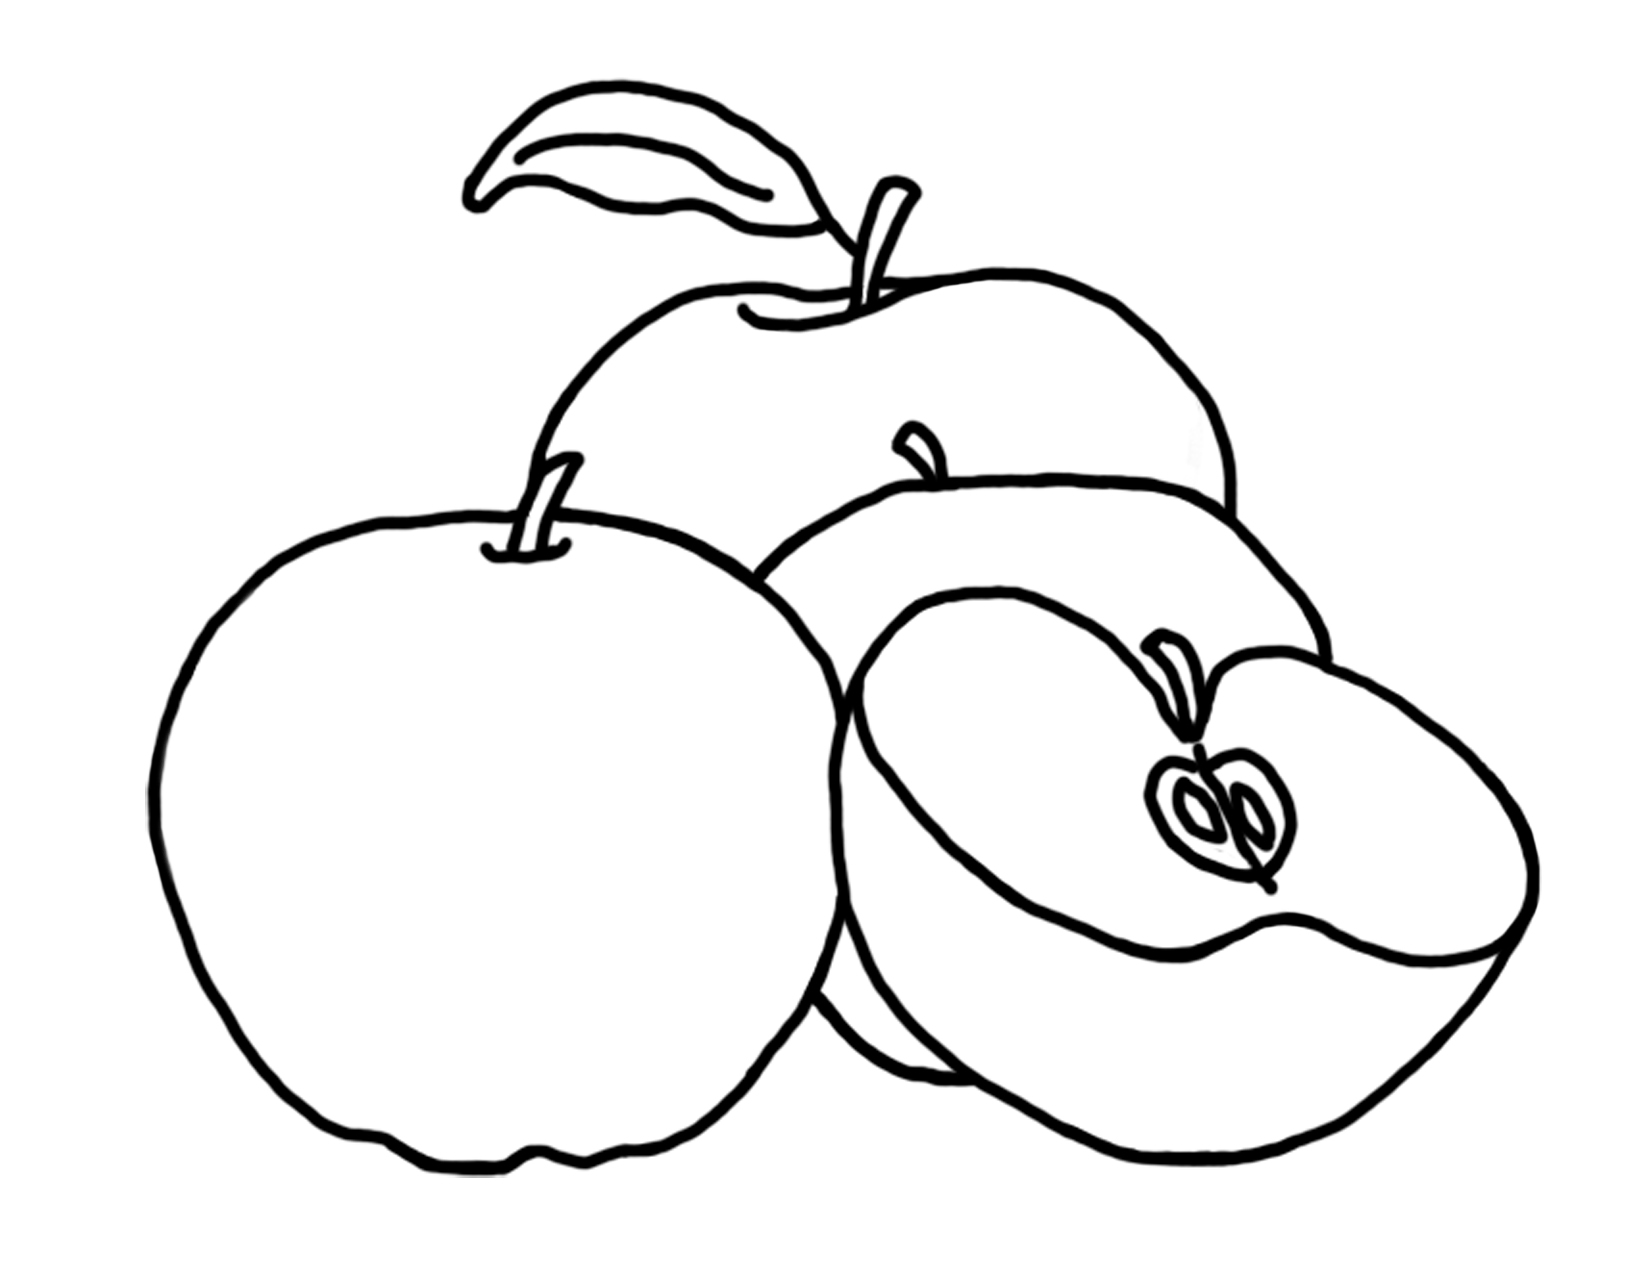 coloring pages for apples apple coloring pages to print coloring apples pages for